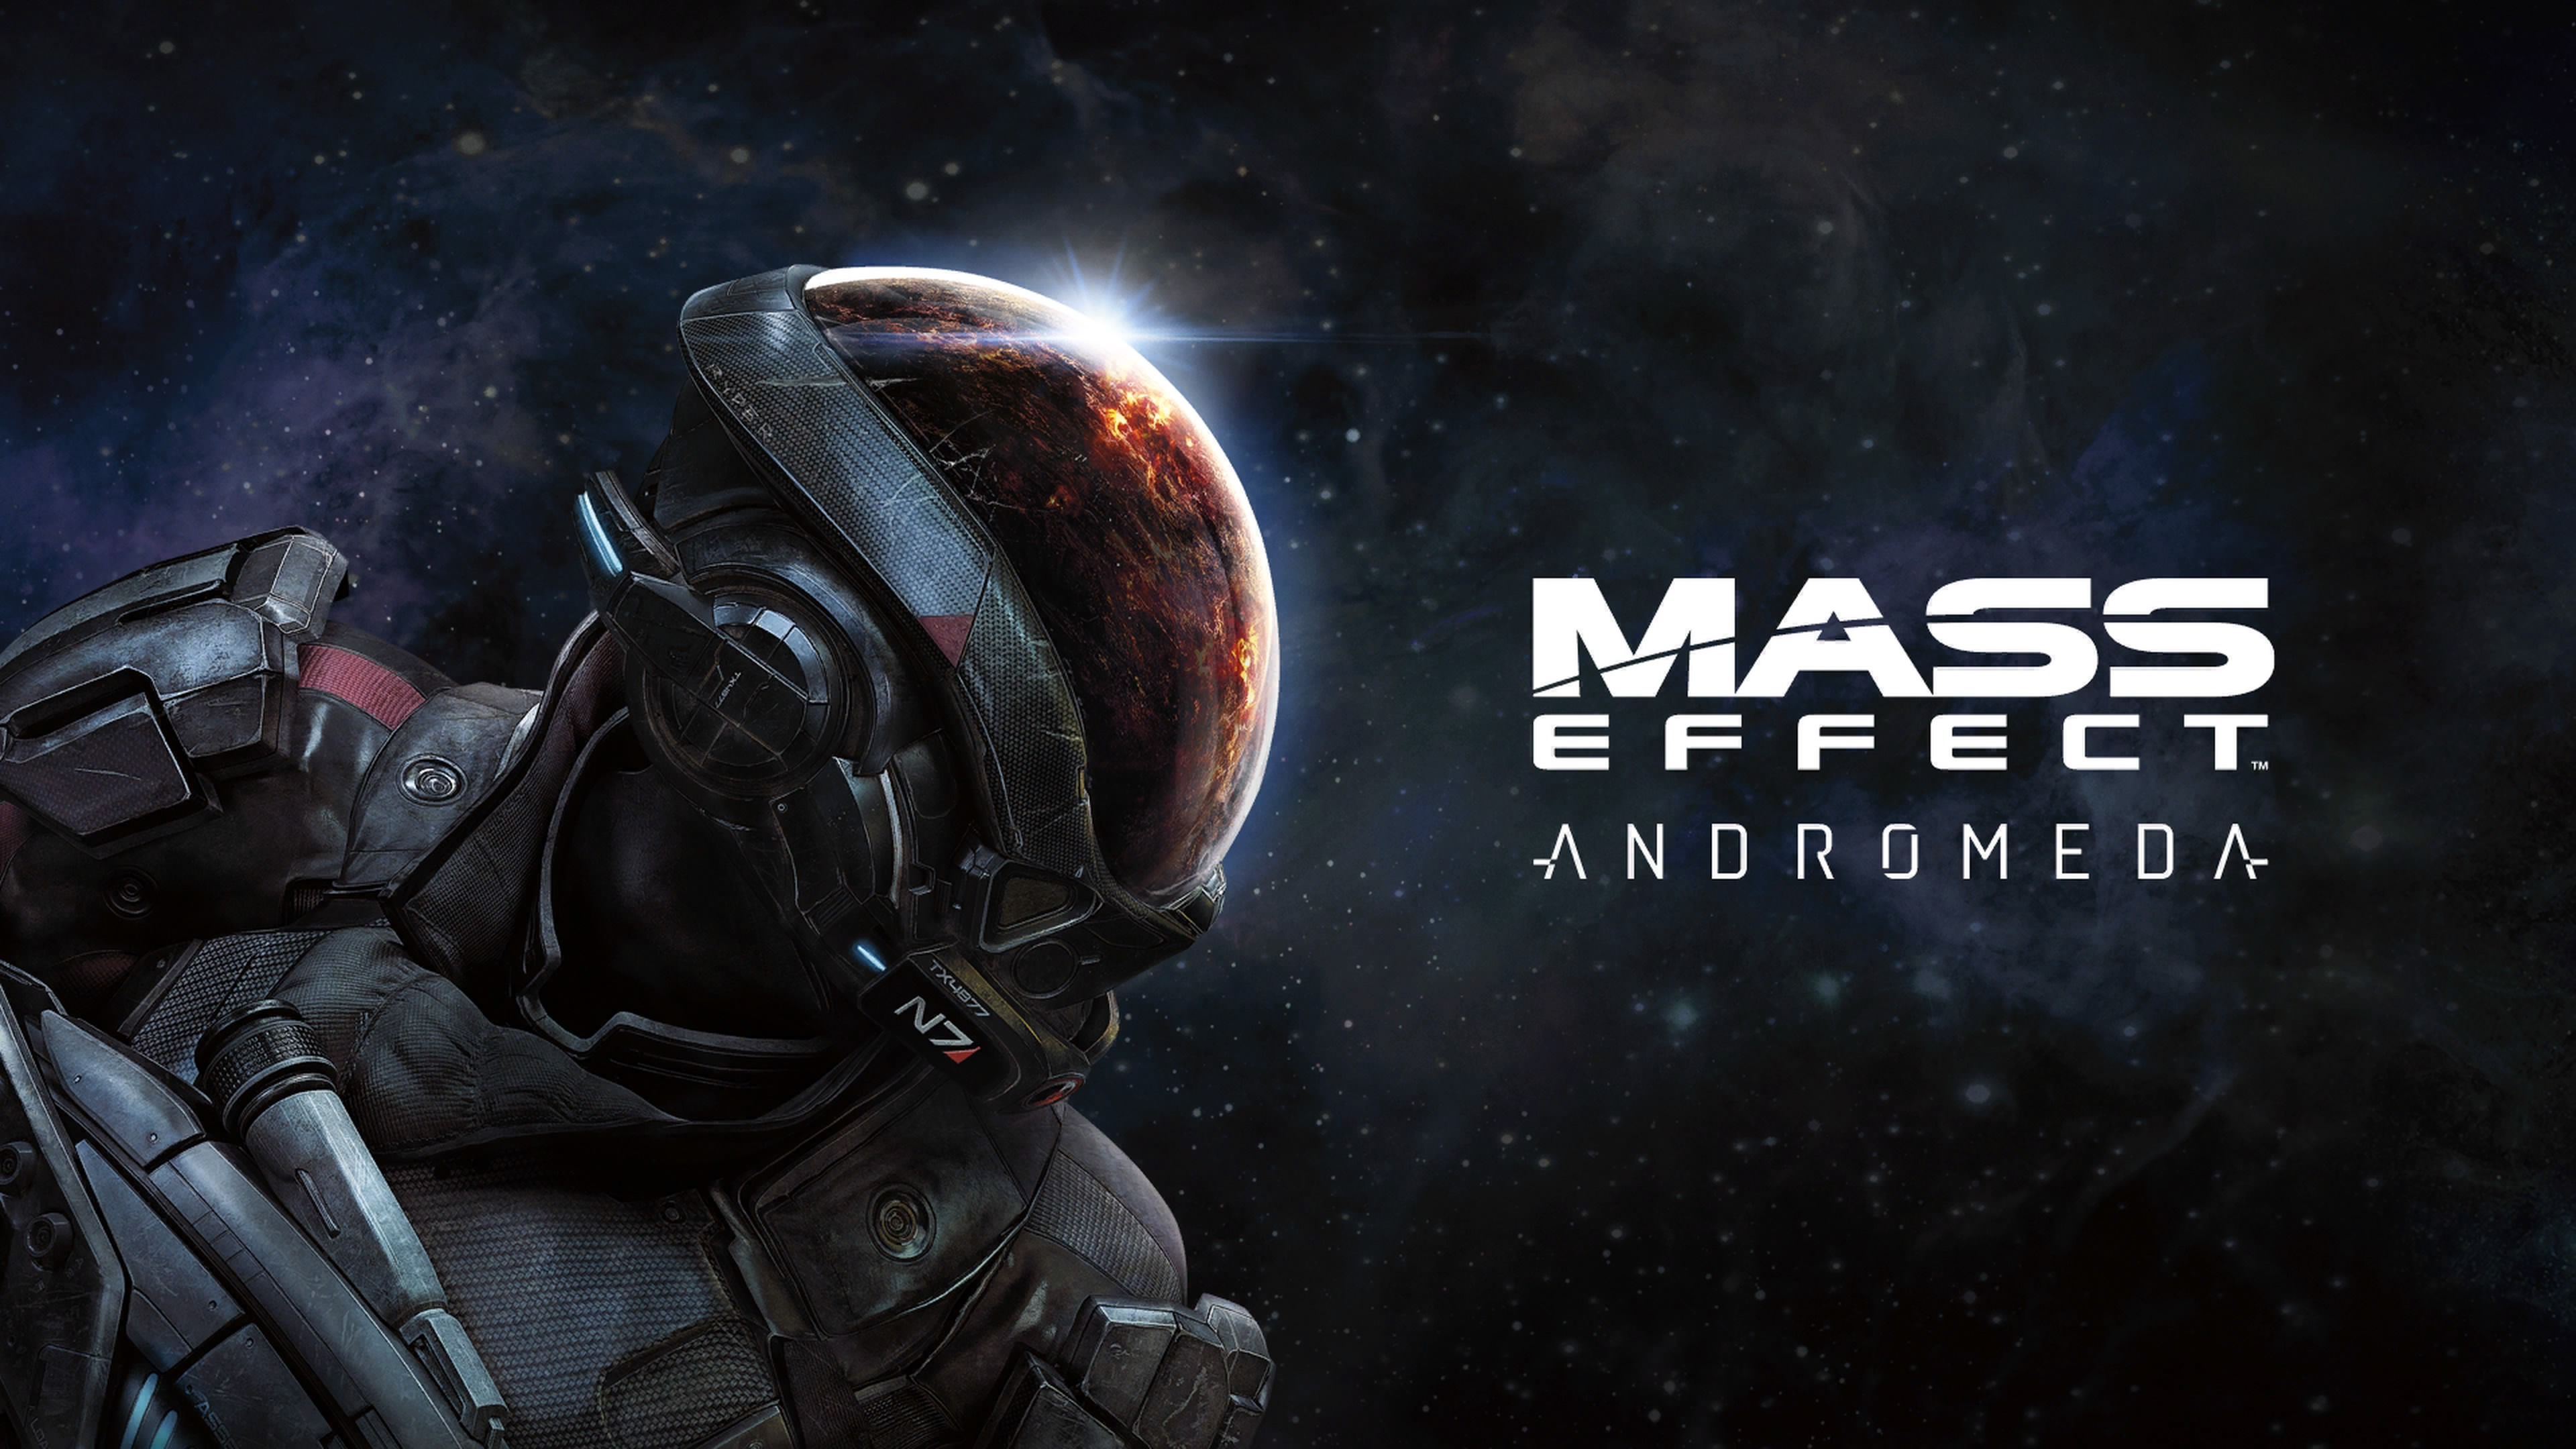 Mass Effect Andromeda 4k Hd Games 4k Wallpapers Images Backgrounds Photos And Pictures